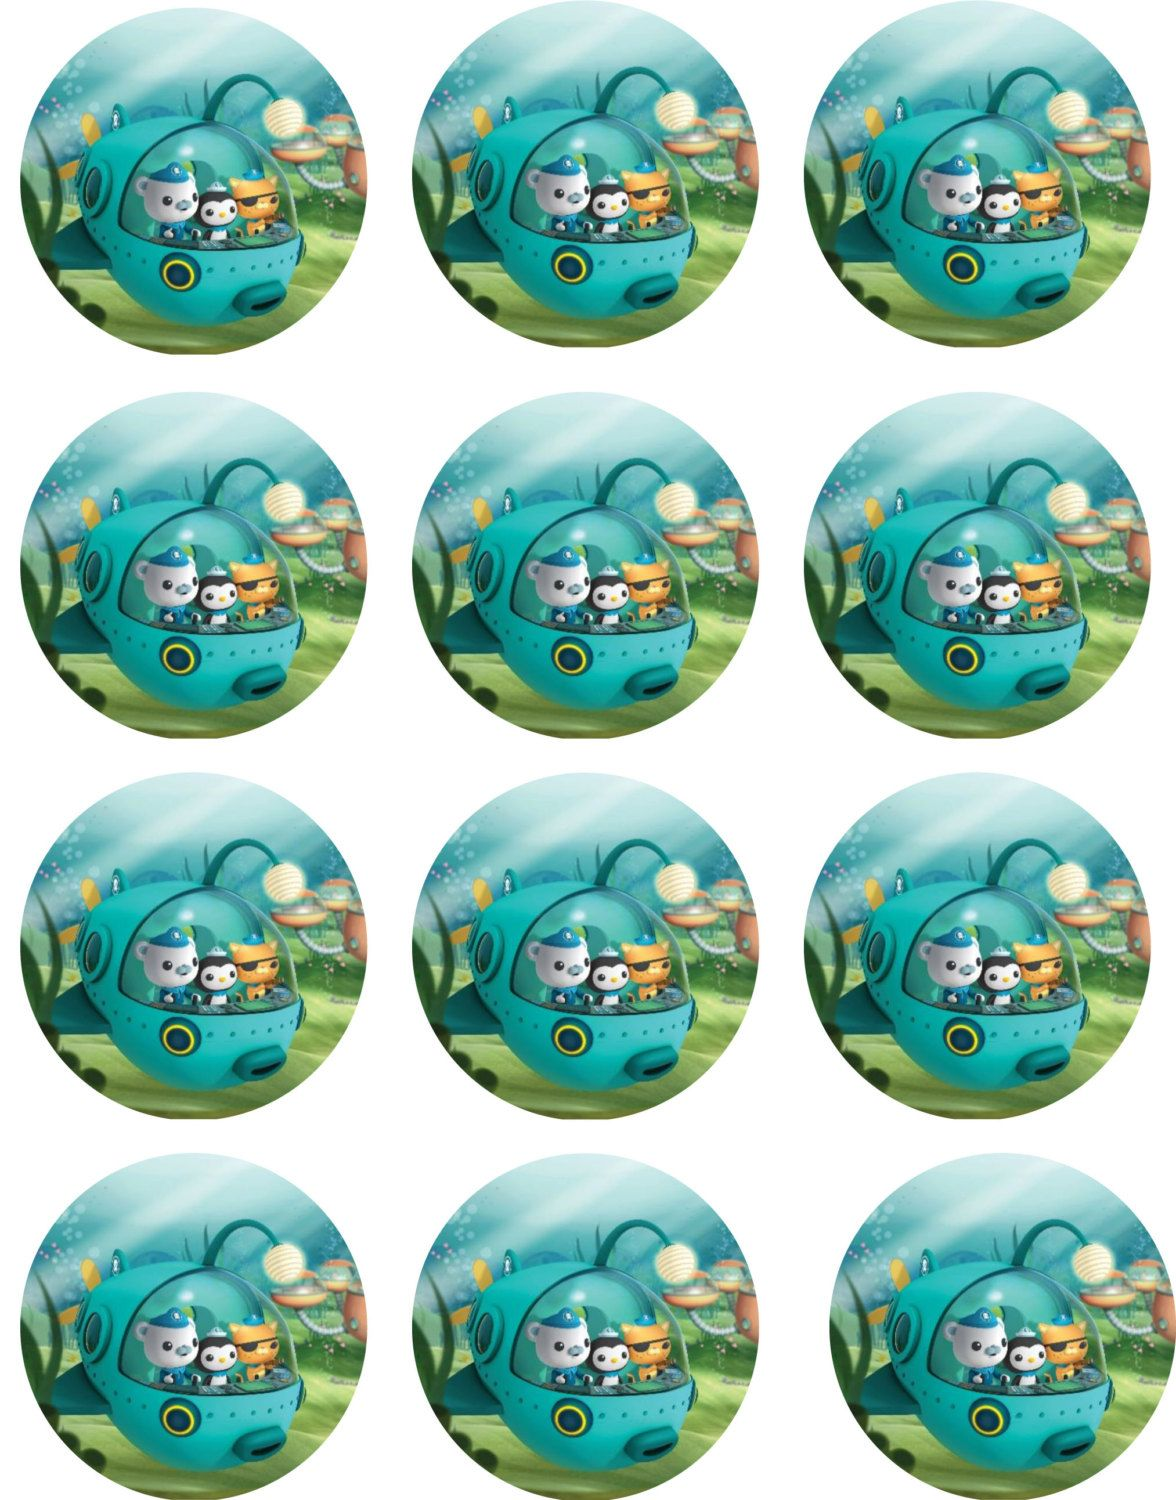 Octonauts Edible Image Cupcake Toppers by ShoreCakeSupply on Etsy